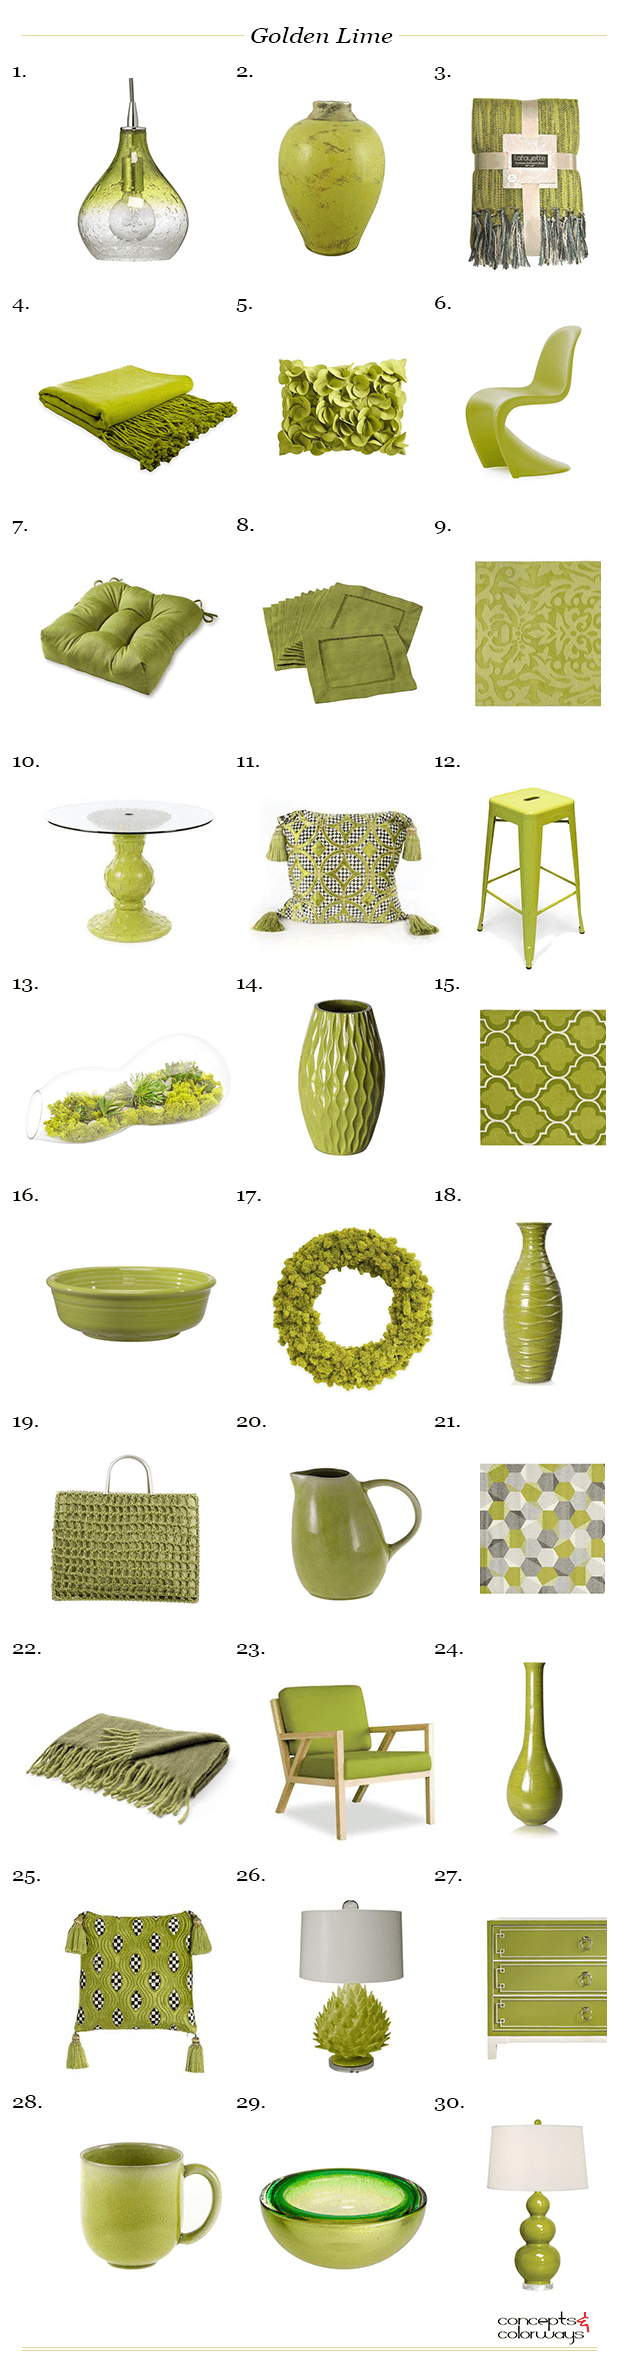 pantone golden lime product roundup